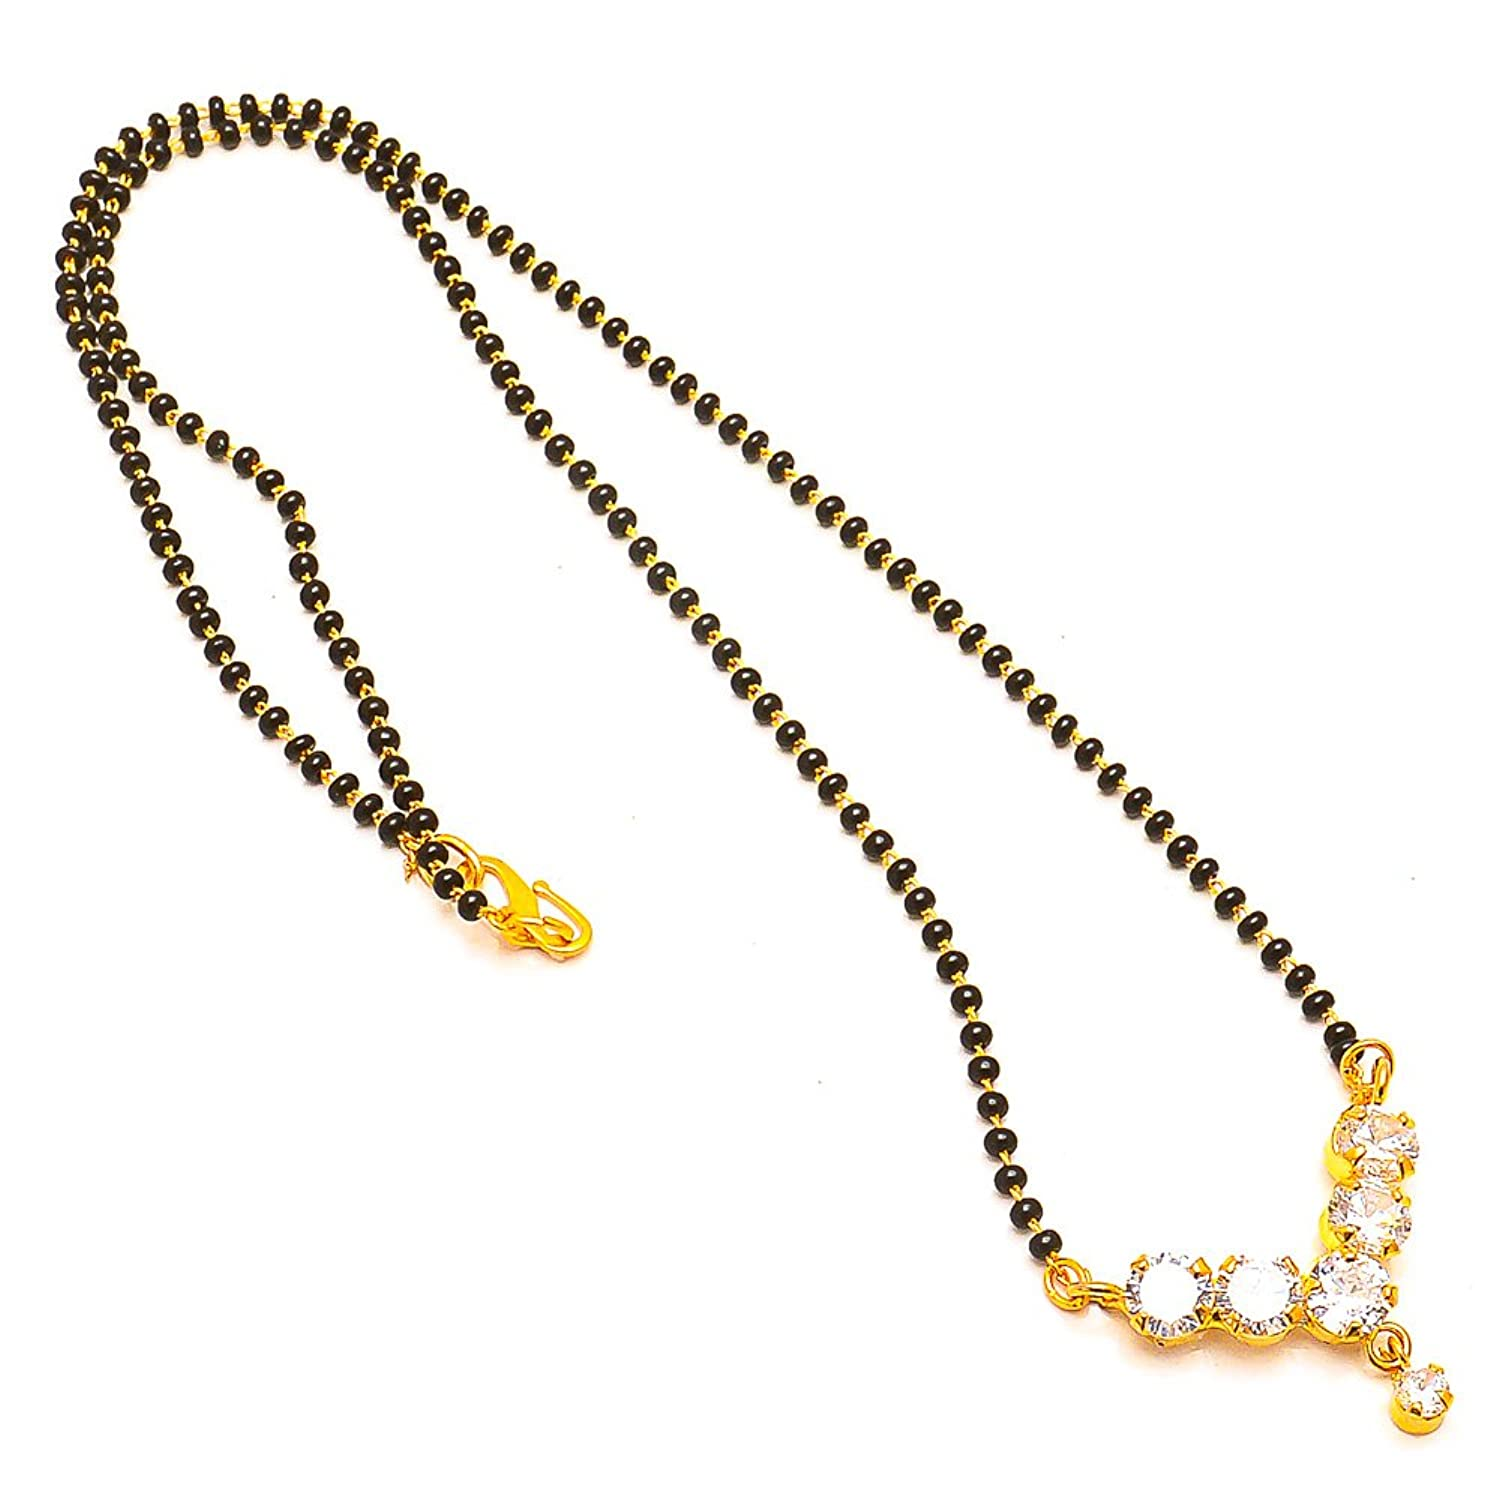 New Mangalsutra Designs: Buy New Mangalsutra Designs online at low ...